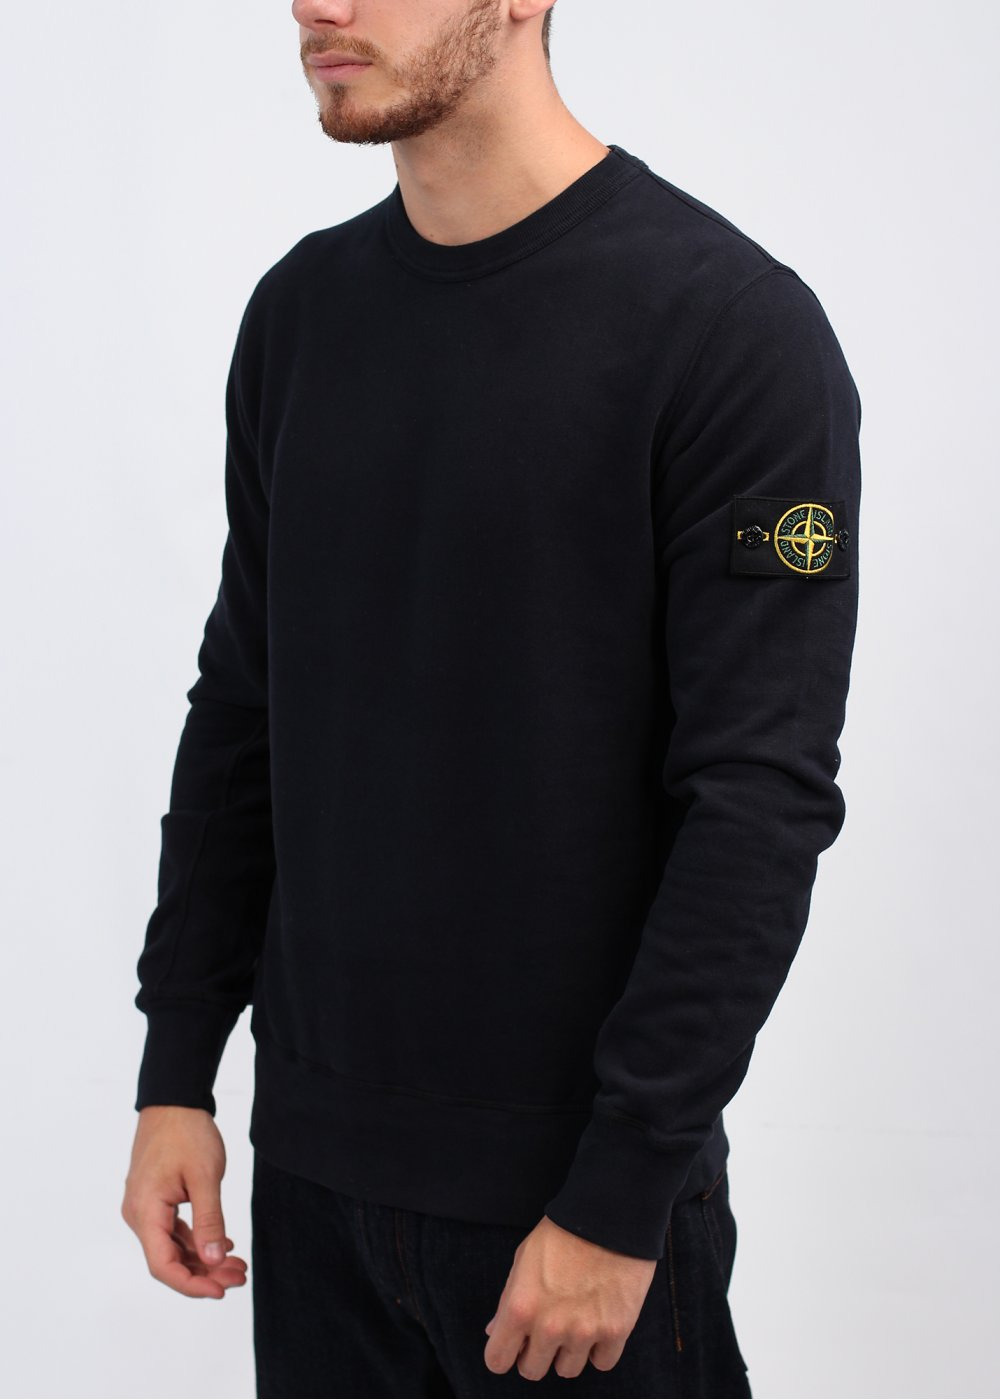 stone island sweatshirt navy. Black Bedroom Furniture Sets. Home Design Ideas